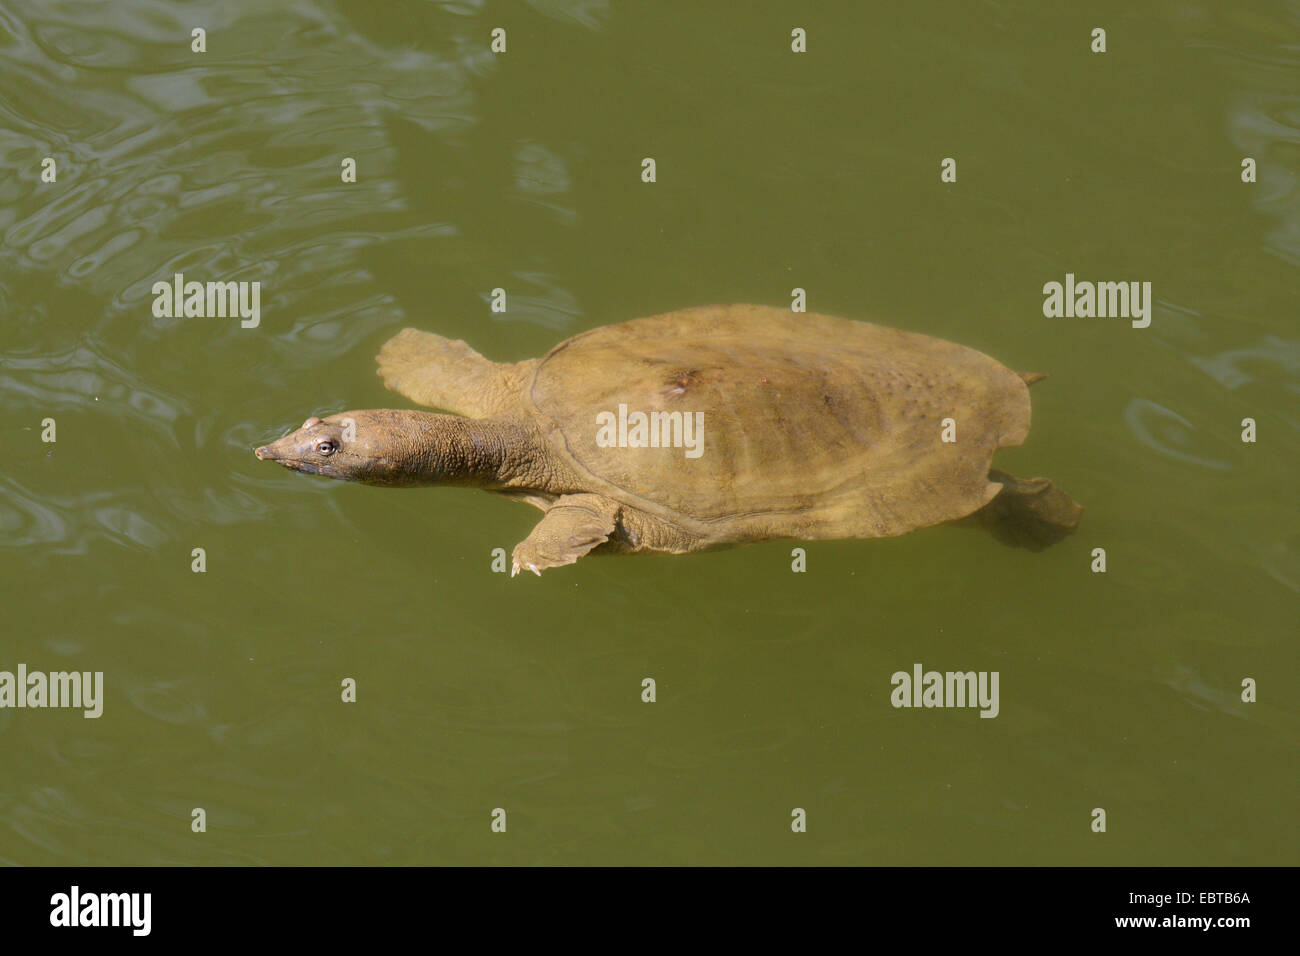 pig-nosed turtle, pitted-shell turtle, New Guinea plateless turtle, pignosed softshell turtle (Carettochelys insculpta) - Stock Image